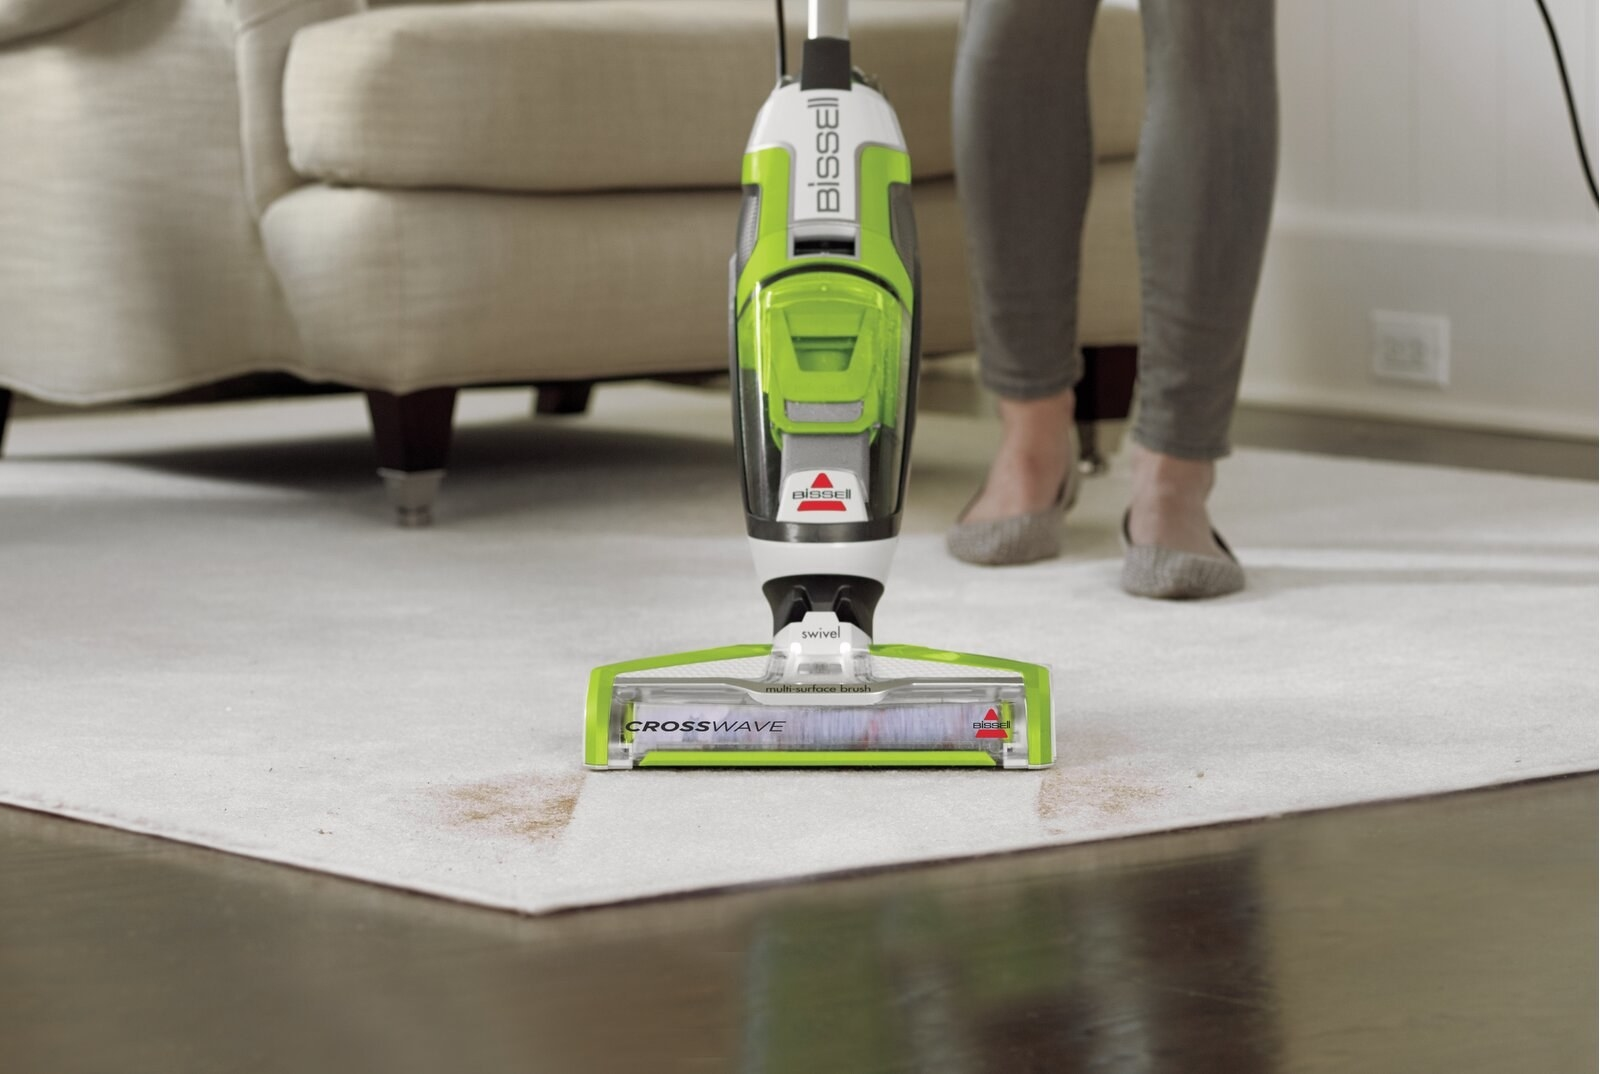 The vacuum, which is bagless, and has a green-and-clear-plastic body